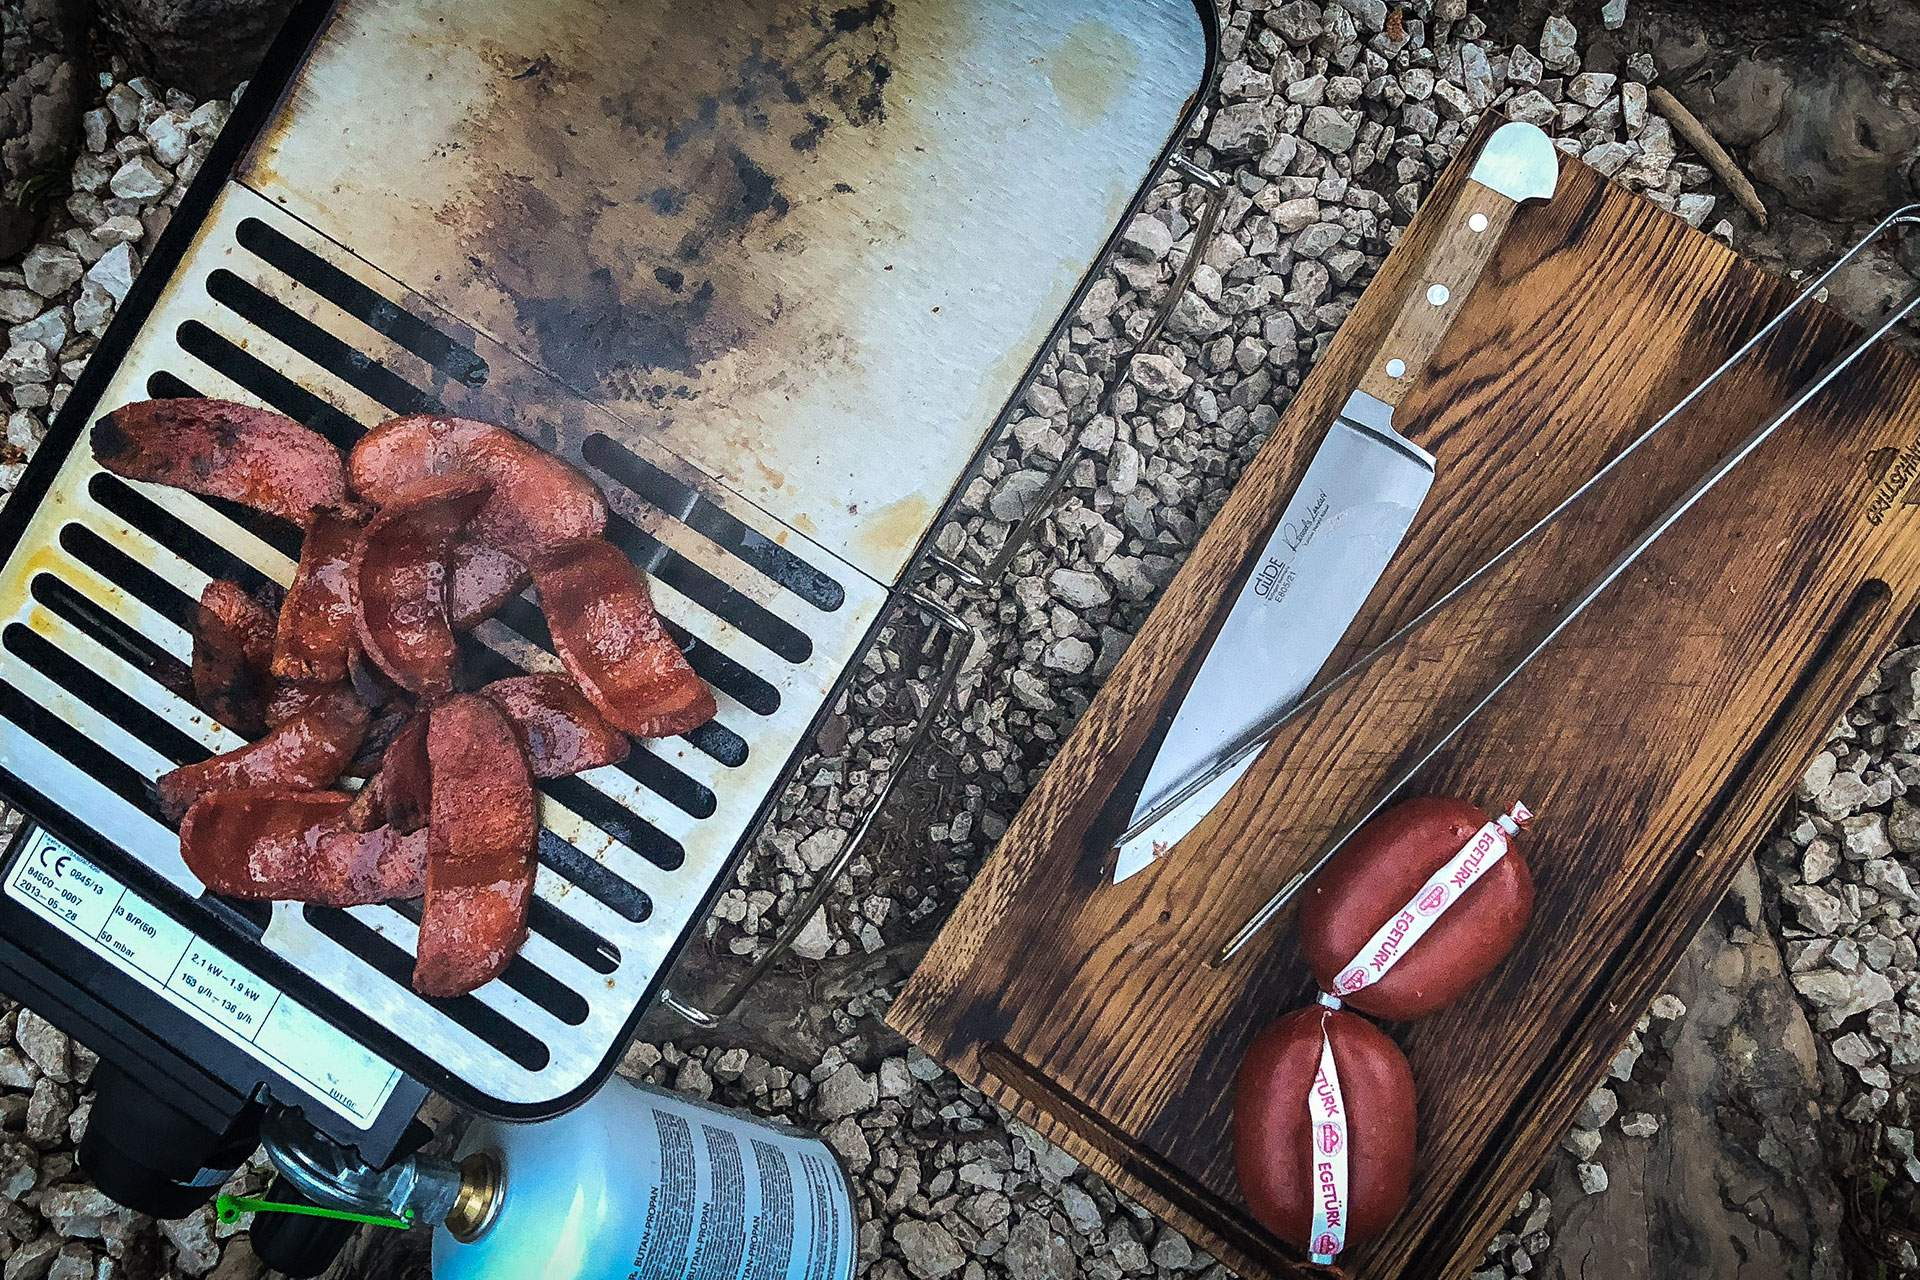 Weber Elektrogrill Empfehlung : Weber pulse smartgrill product launch event onkel kethe